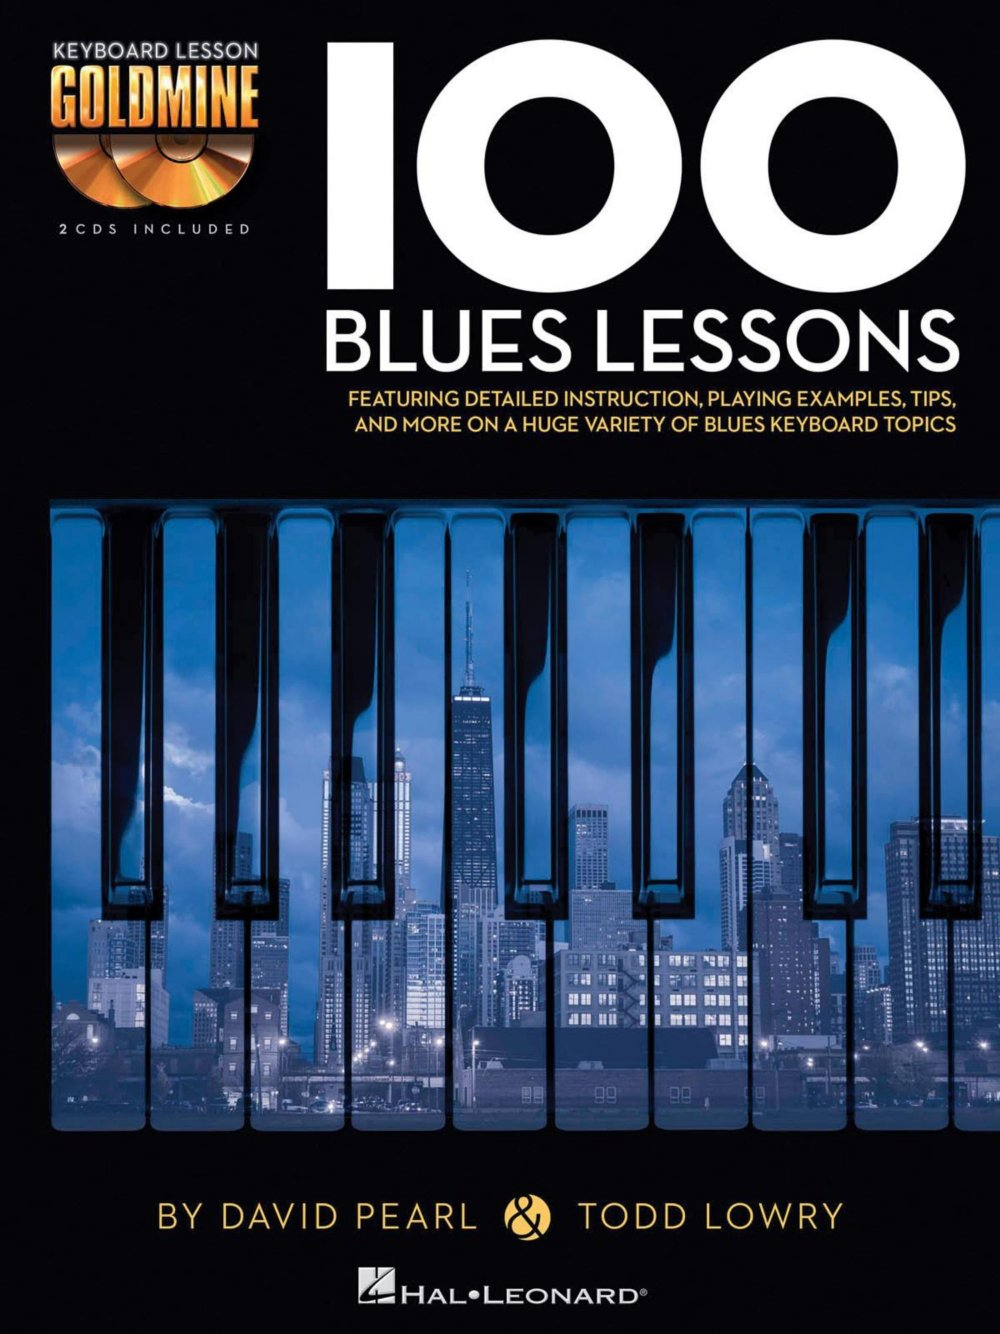 Hal Leonard 100 Blues Lessons - Keyboard Lesson Goldmine Series Series  Book/2-CD Pack: 0884088949365: Amazon.com: Books